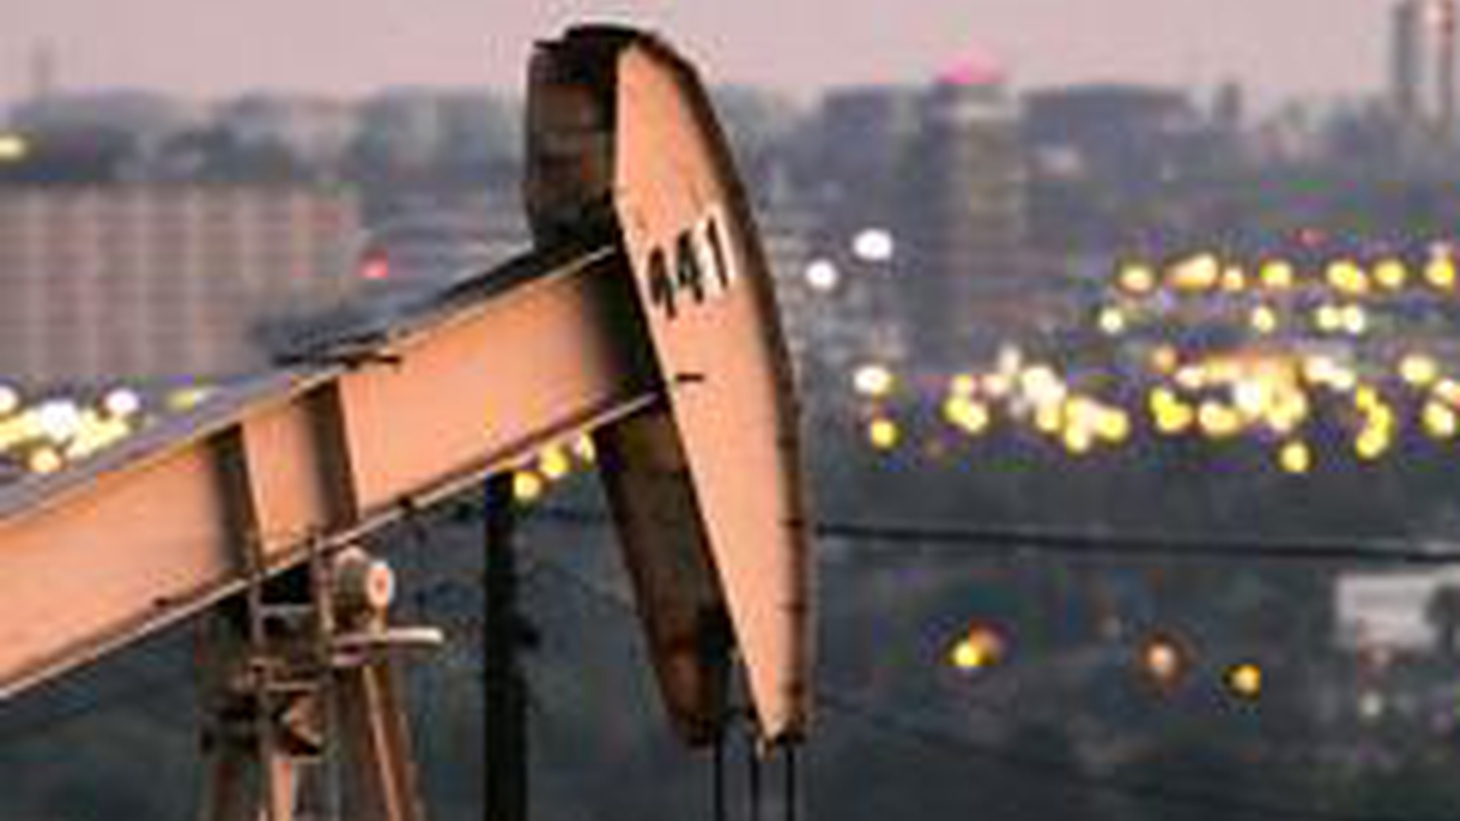 Oil is as much a part of Southern California history as sunshine and citrus groves. Downtown LA is pockmarked with oil wells capped before they ran dry. In Long Beach and Signal Hill, there were forests of derricks and they're still pumping in Seal Beach, Santa Fe Springs and Beverly Hills. Tonight: is there an oil well coming near you?